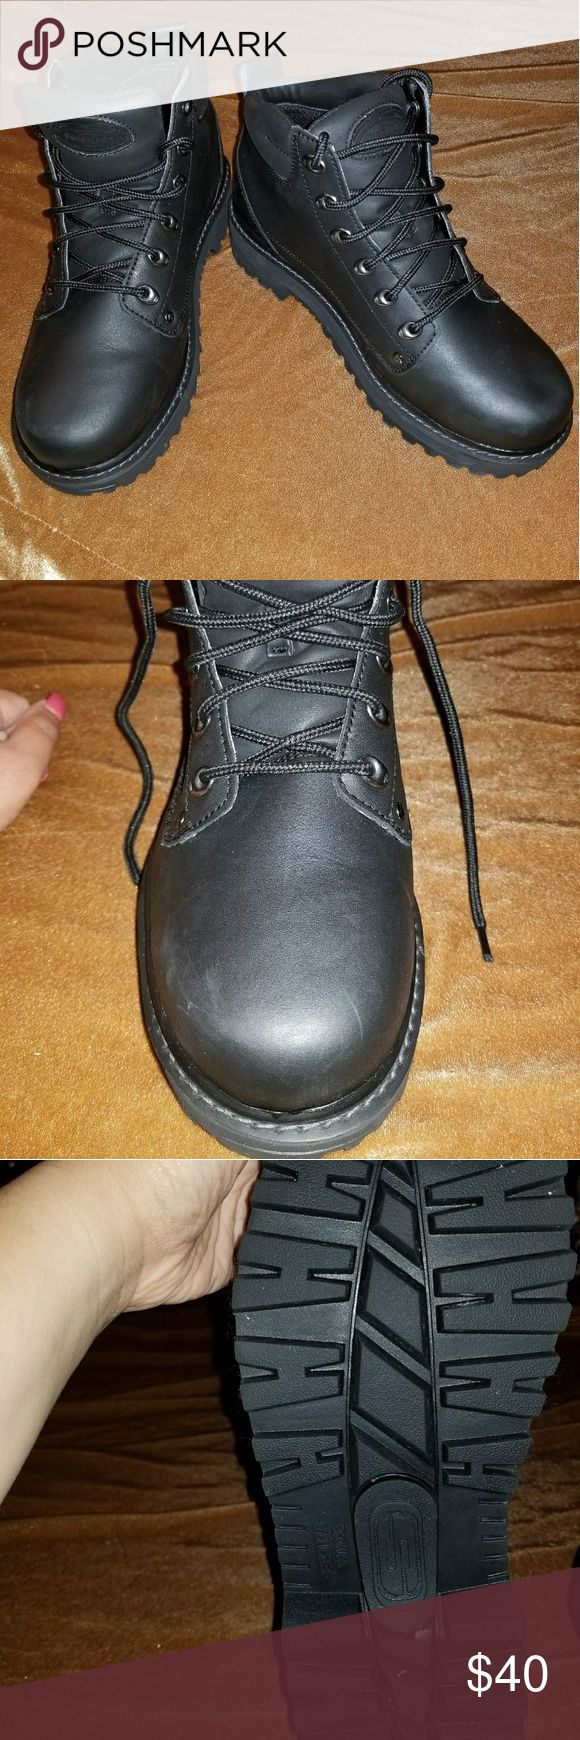 Men's Sketchers boots 10.5 extra wide Worn once, excellent condition. Left boot has small dent near toe due to being in storage (see pic). Leather upper, balance man made. Generously padded collar and lining. Skechers Shoes Boots